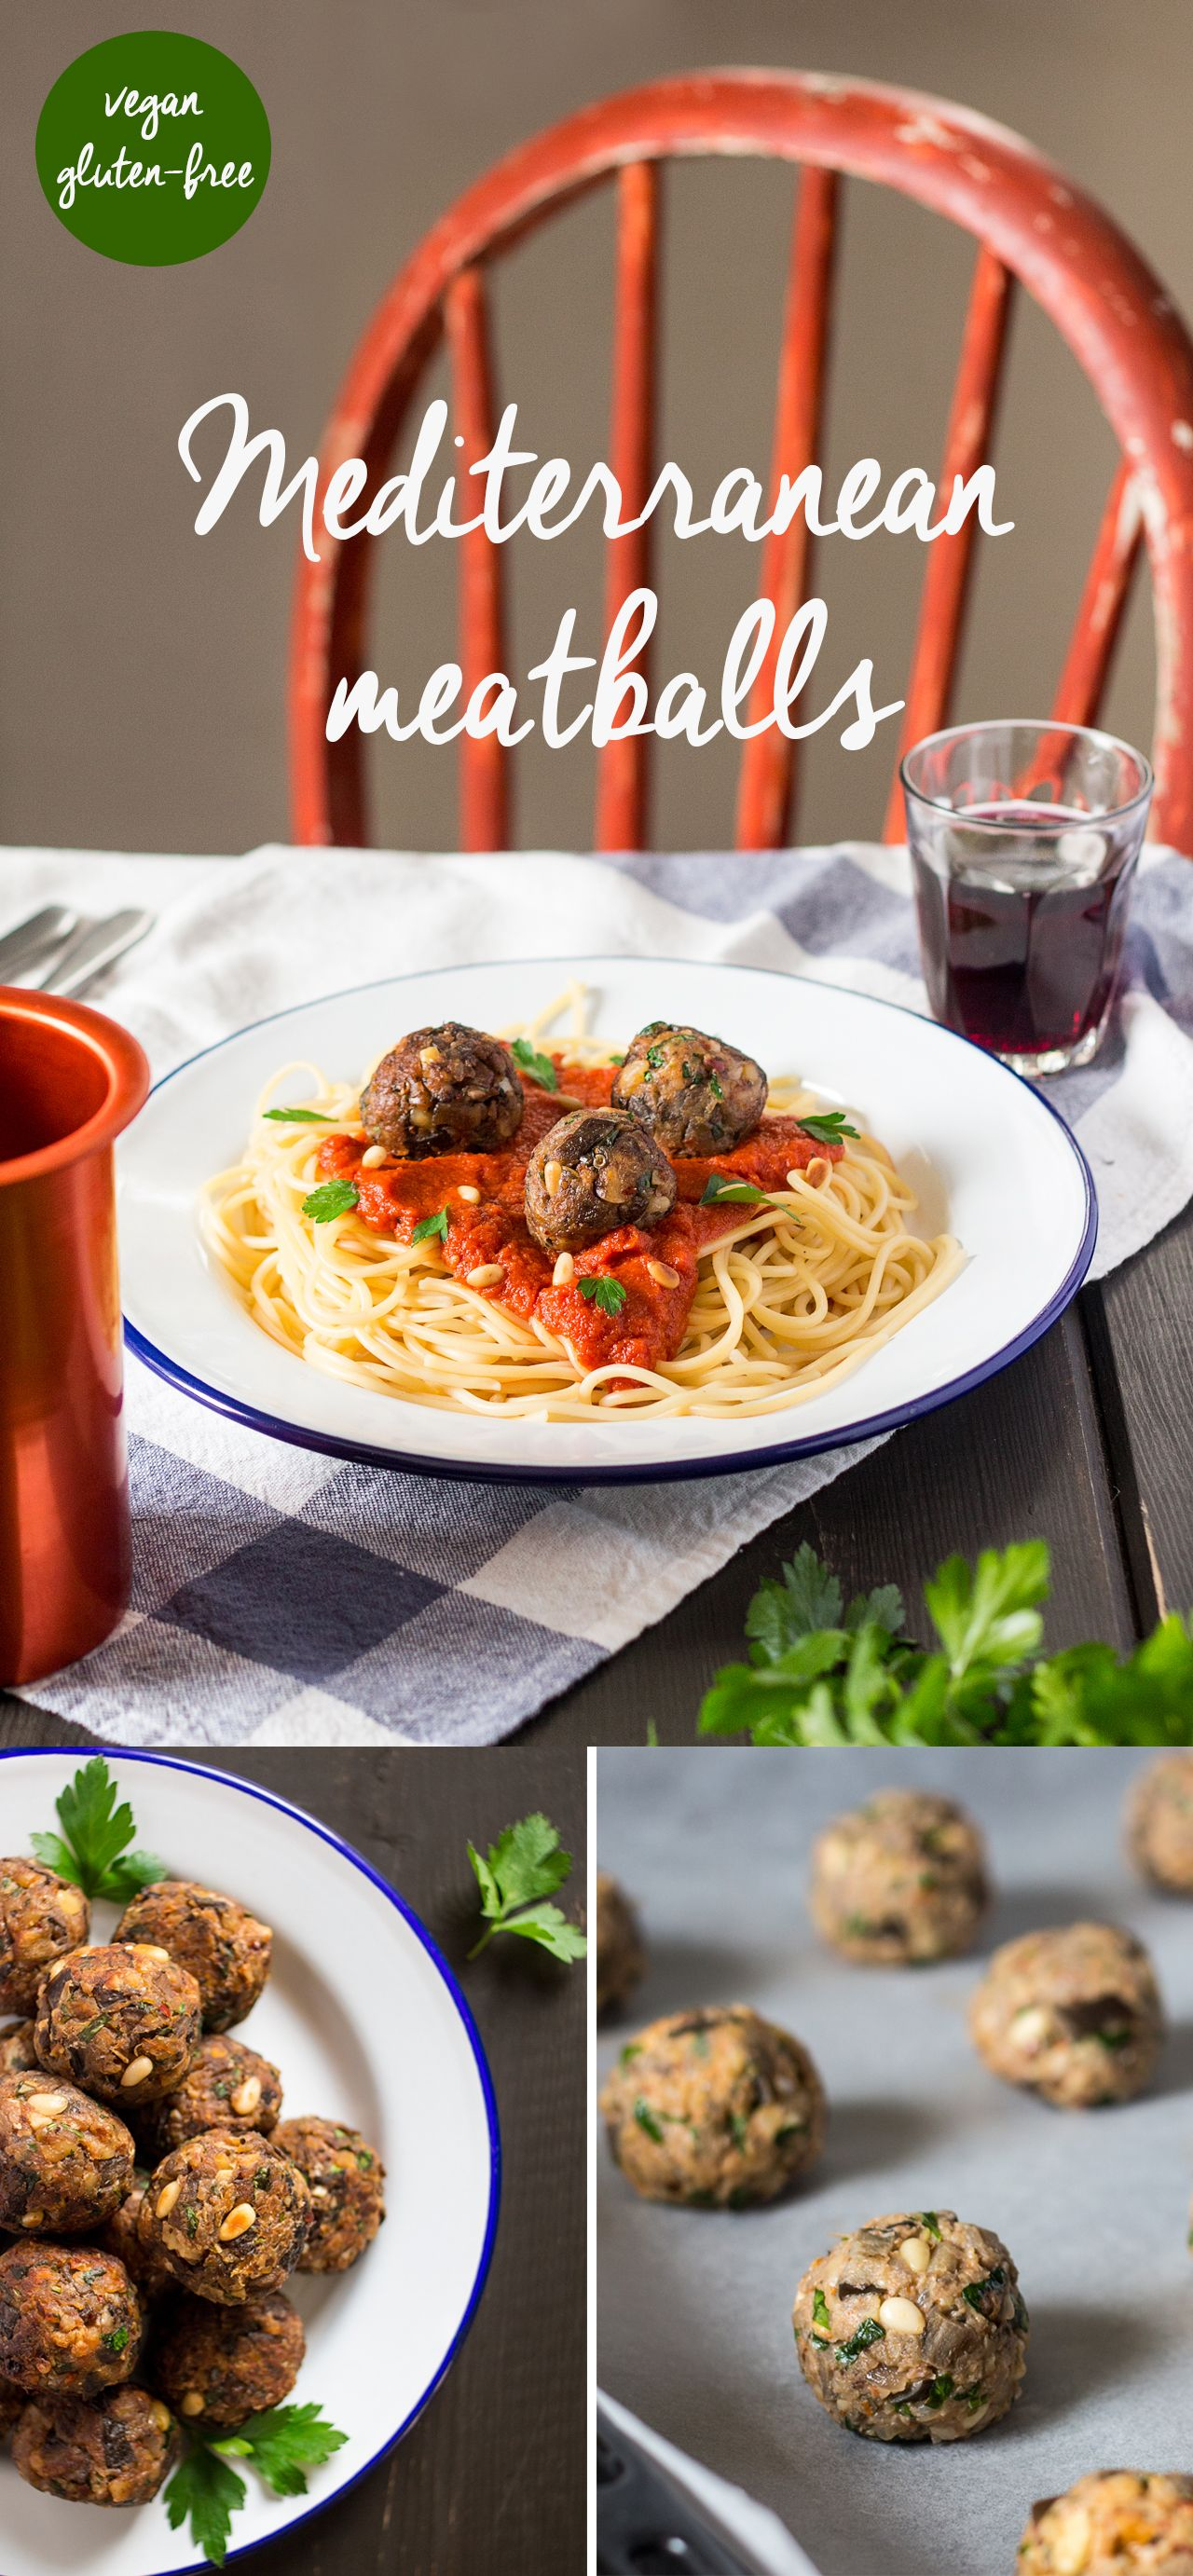 Easy Vegan Meatballs